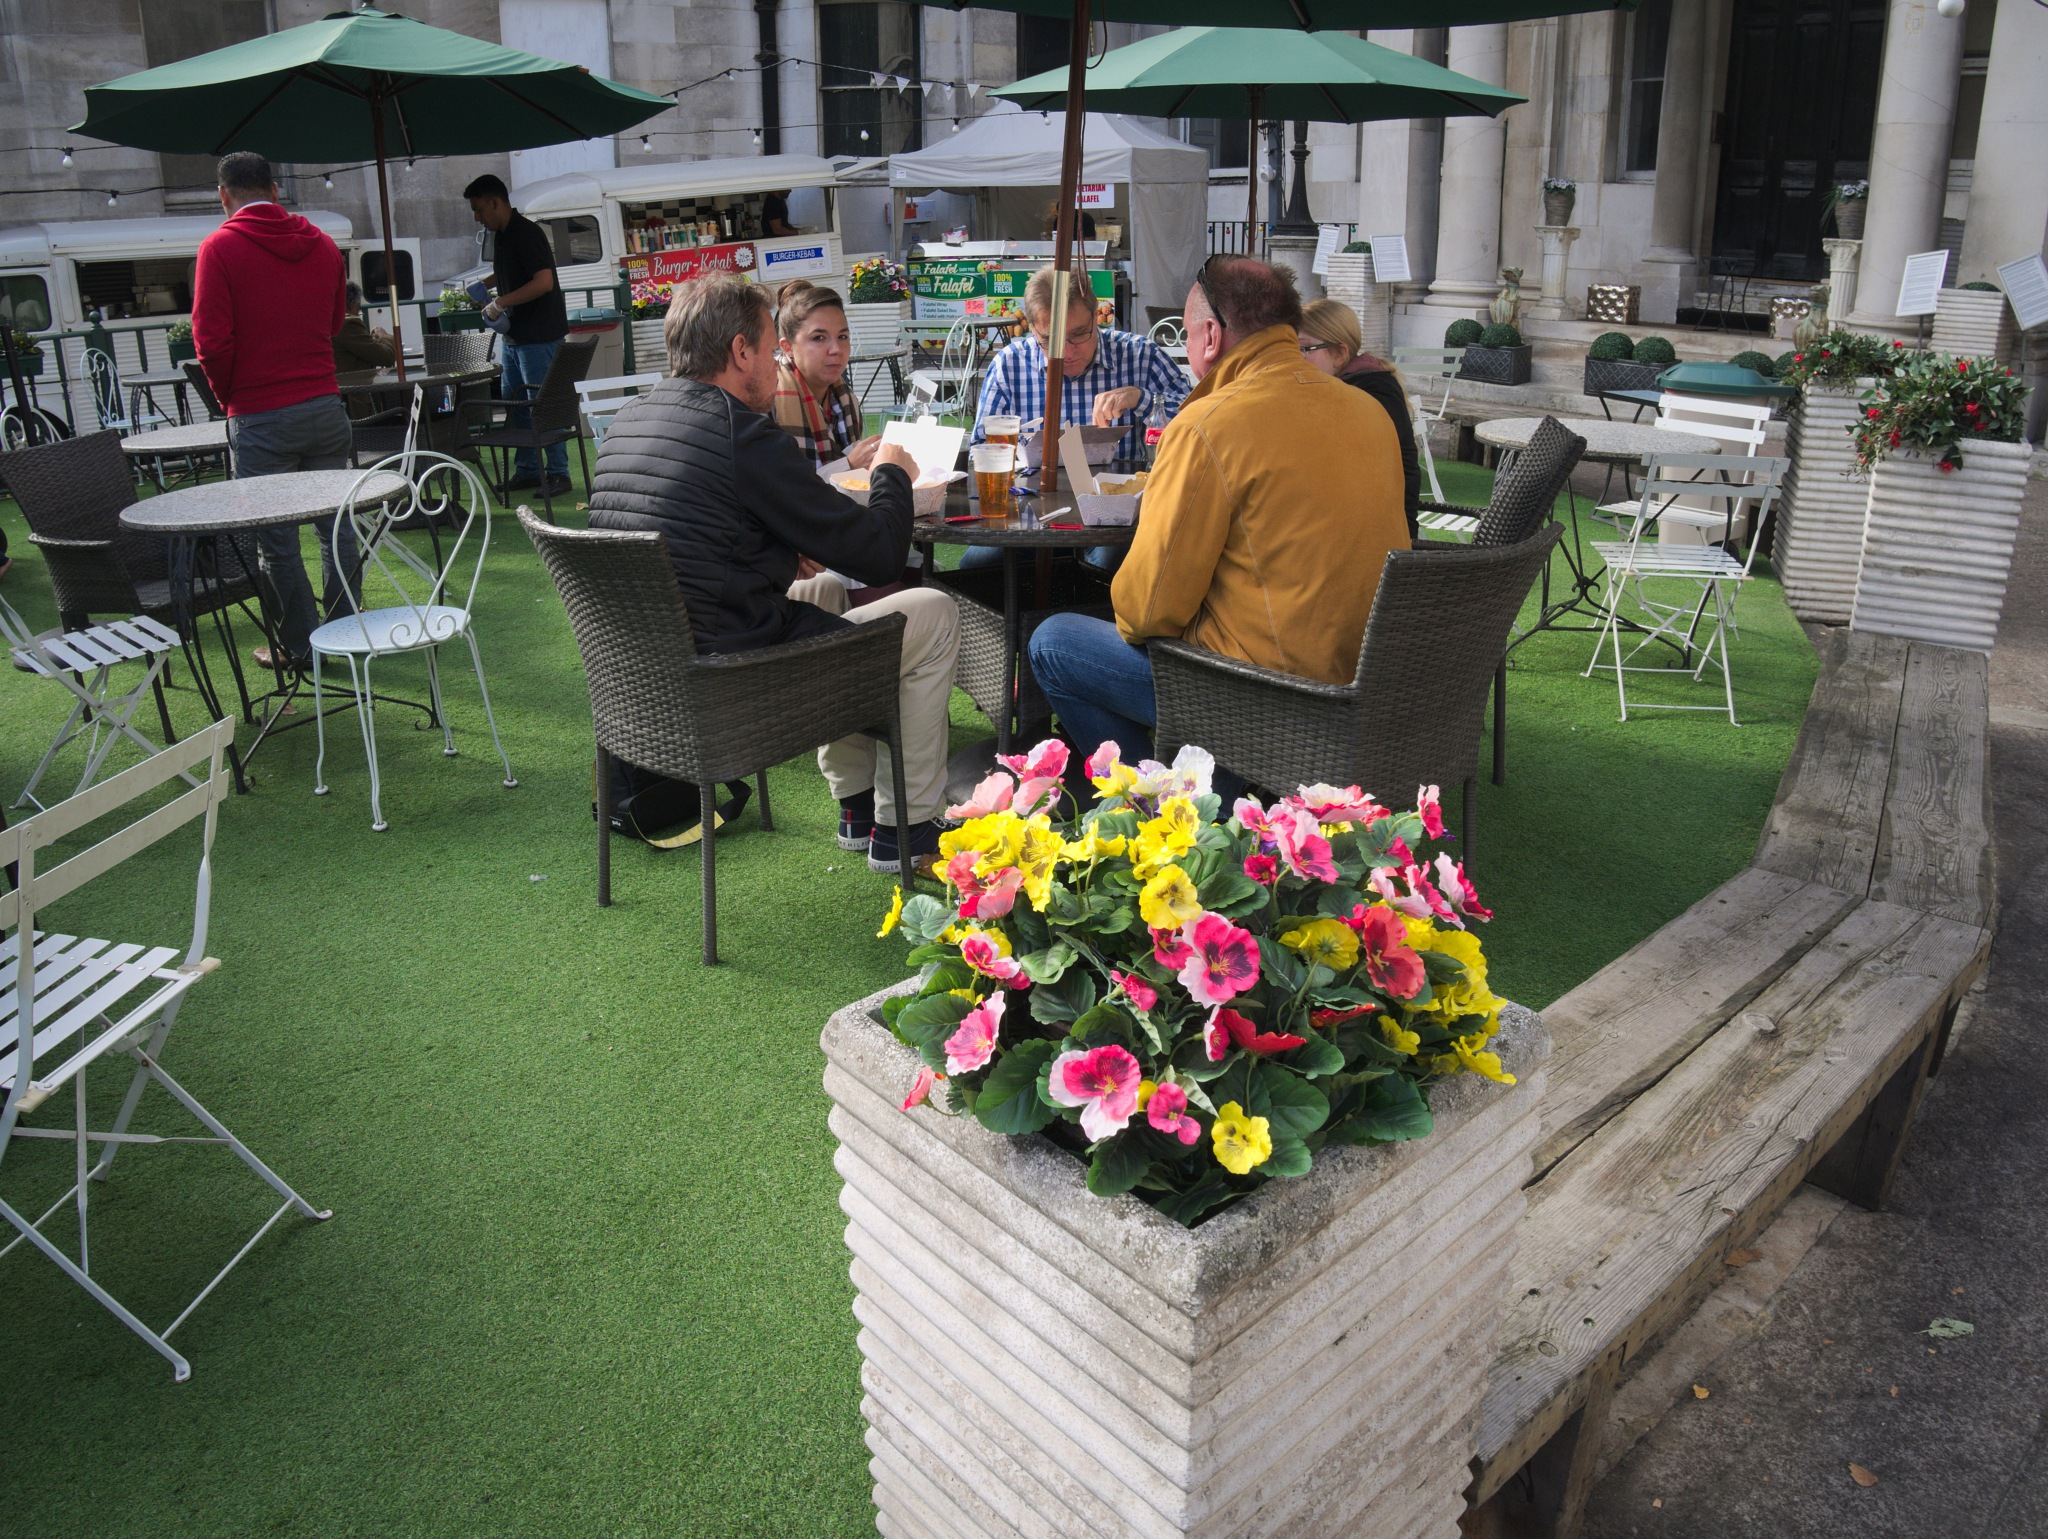 Outdoor dining, London by TonyG